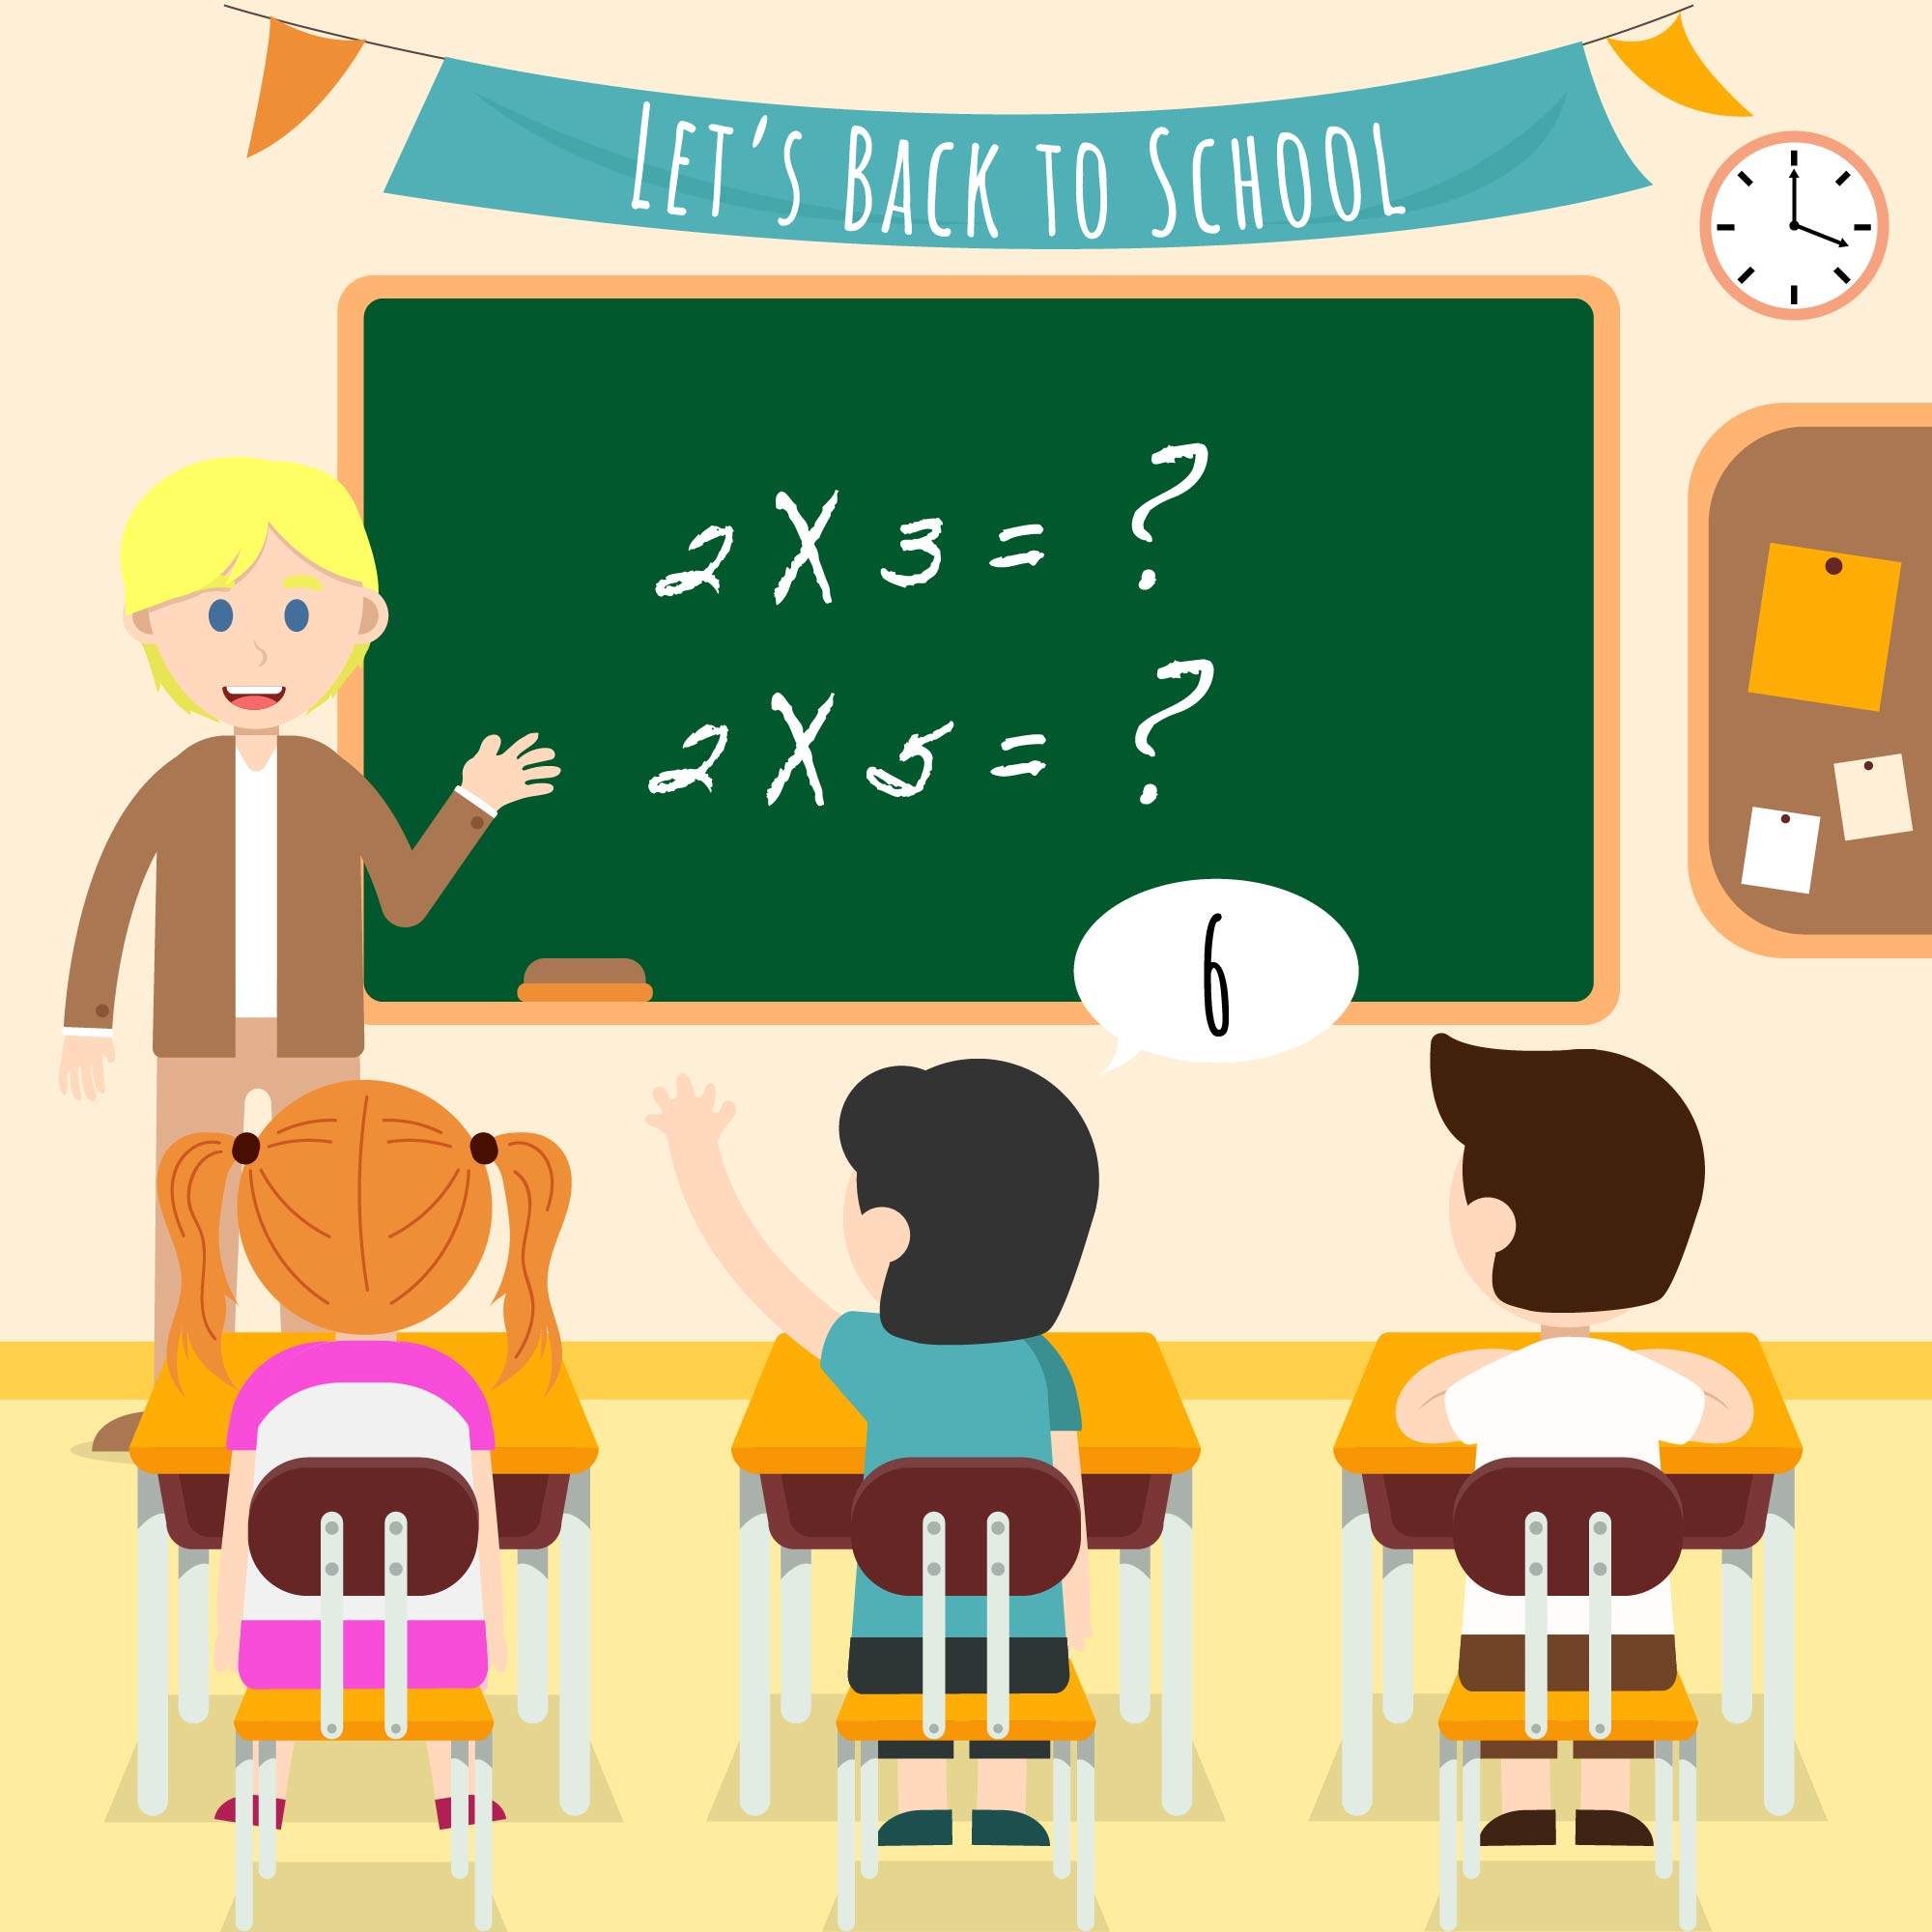 Kids In The Classroom Illustration Vector Download Free